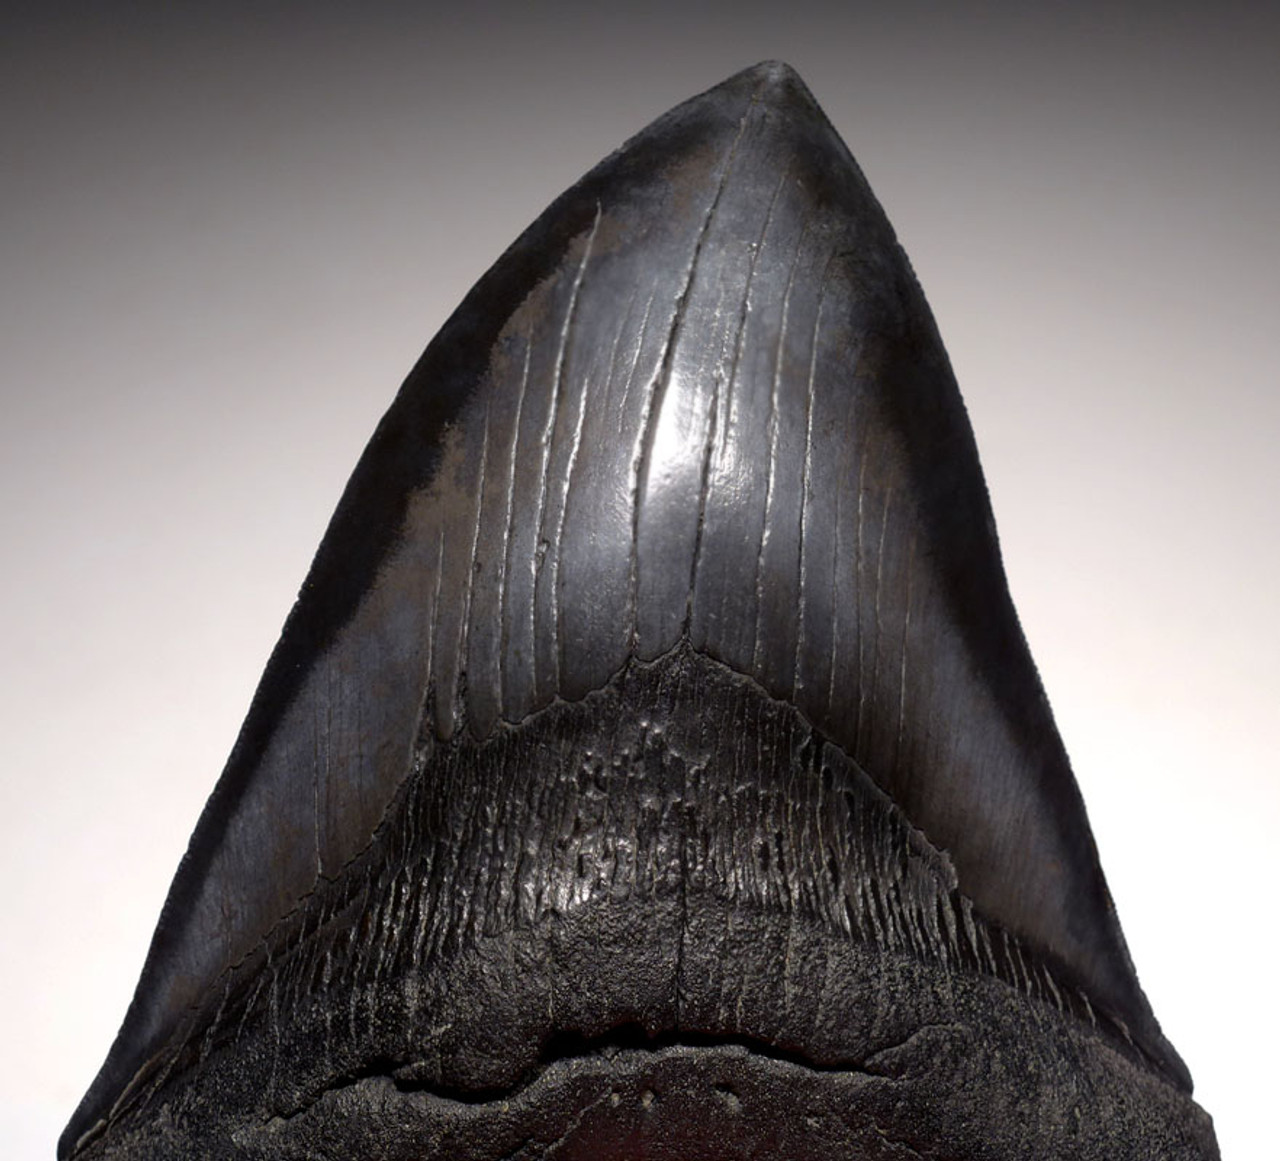 SH6-349 -  INVESTMENT CLASS NEARLY 6 INCH MEGALODON SHARK TOOTH WITH MIDNIGHT BLACK MOTTLED ENAMEL